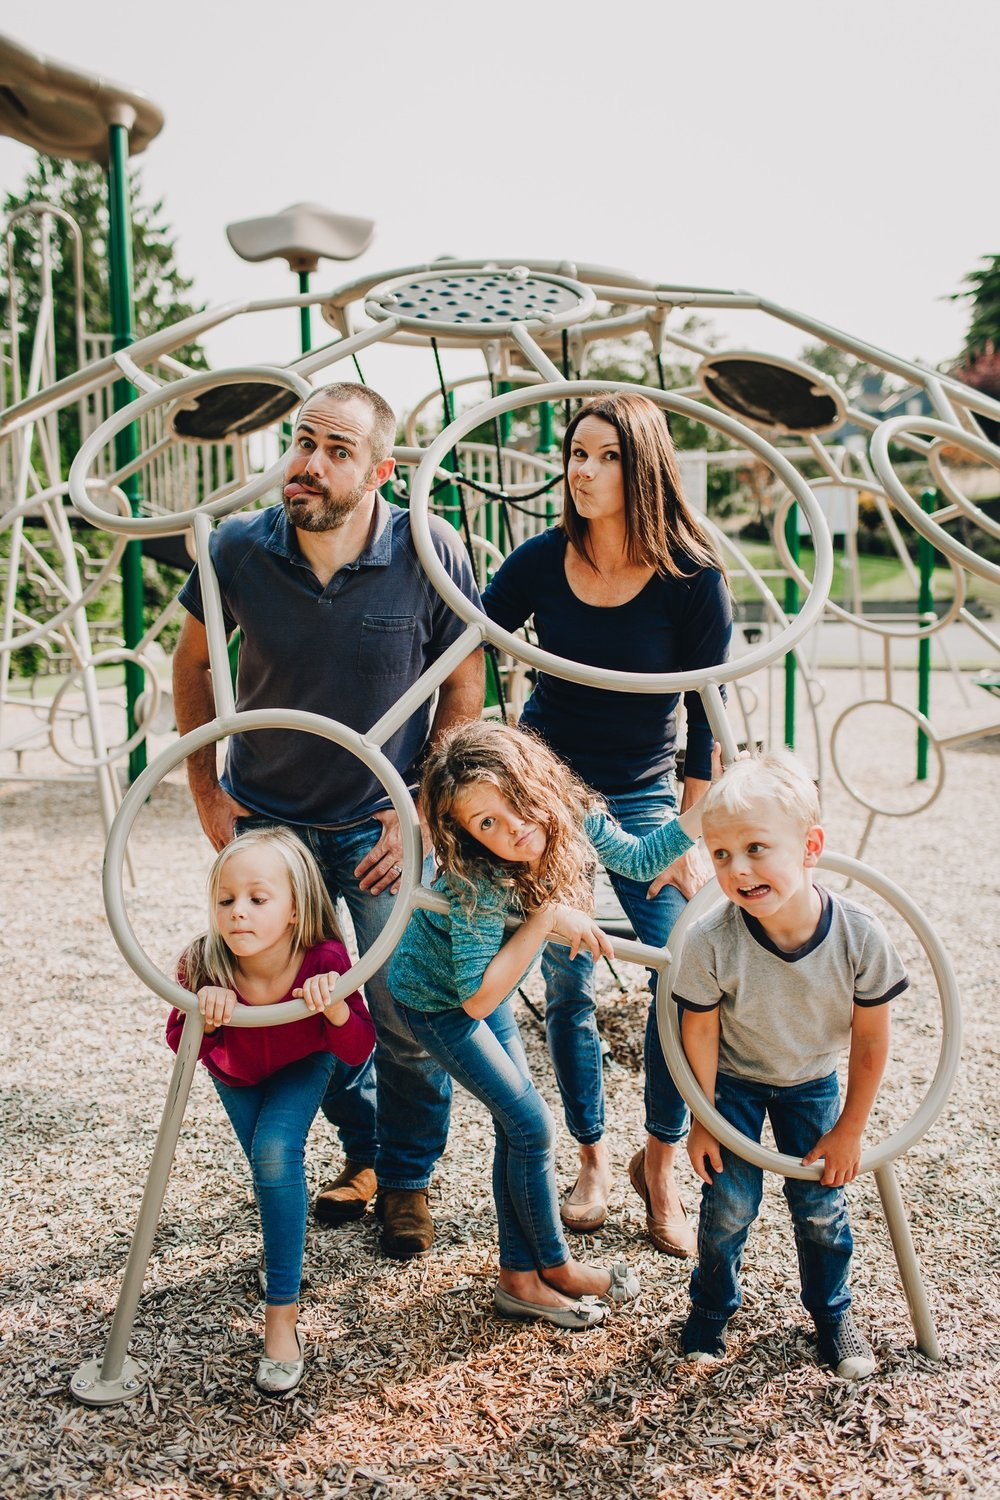 14_Carlisle Family-SeattleFamilyPhotography-KristaWelchCreative-0038_Family_Photographer_Fun_Playground_Photography_Seattle_North_Beach.jpg